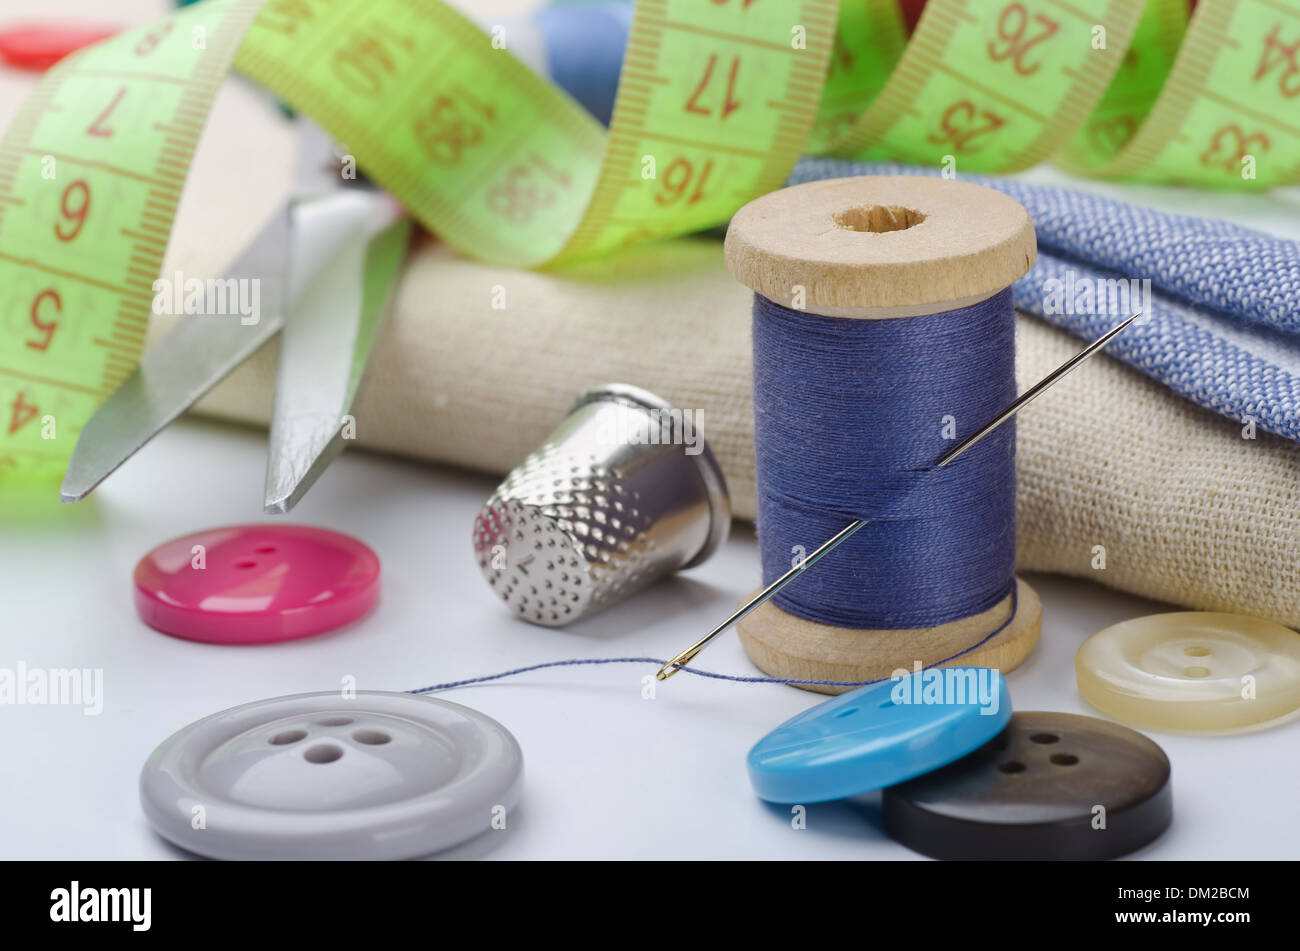 Sewing items - Stock Image